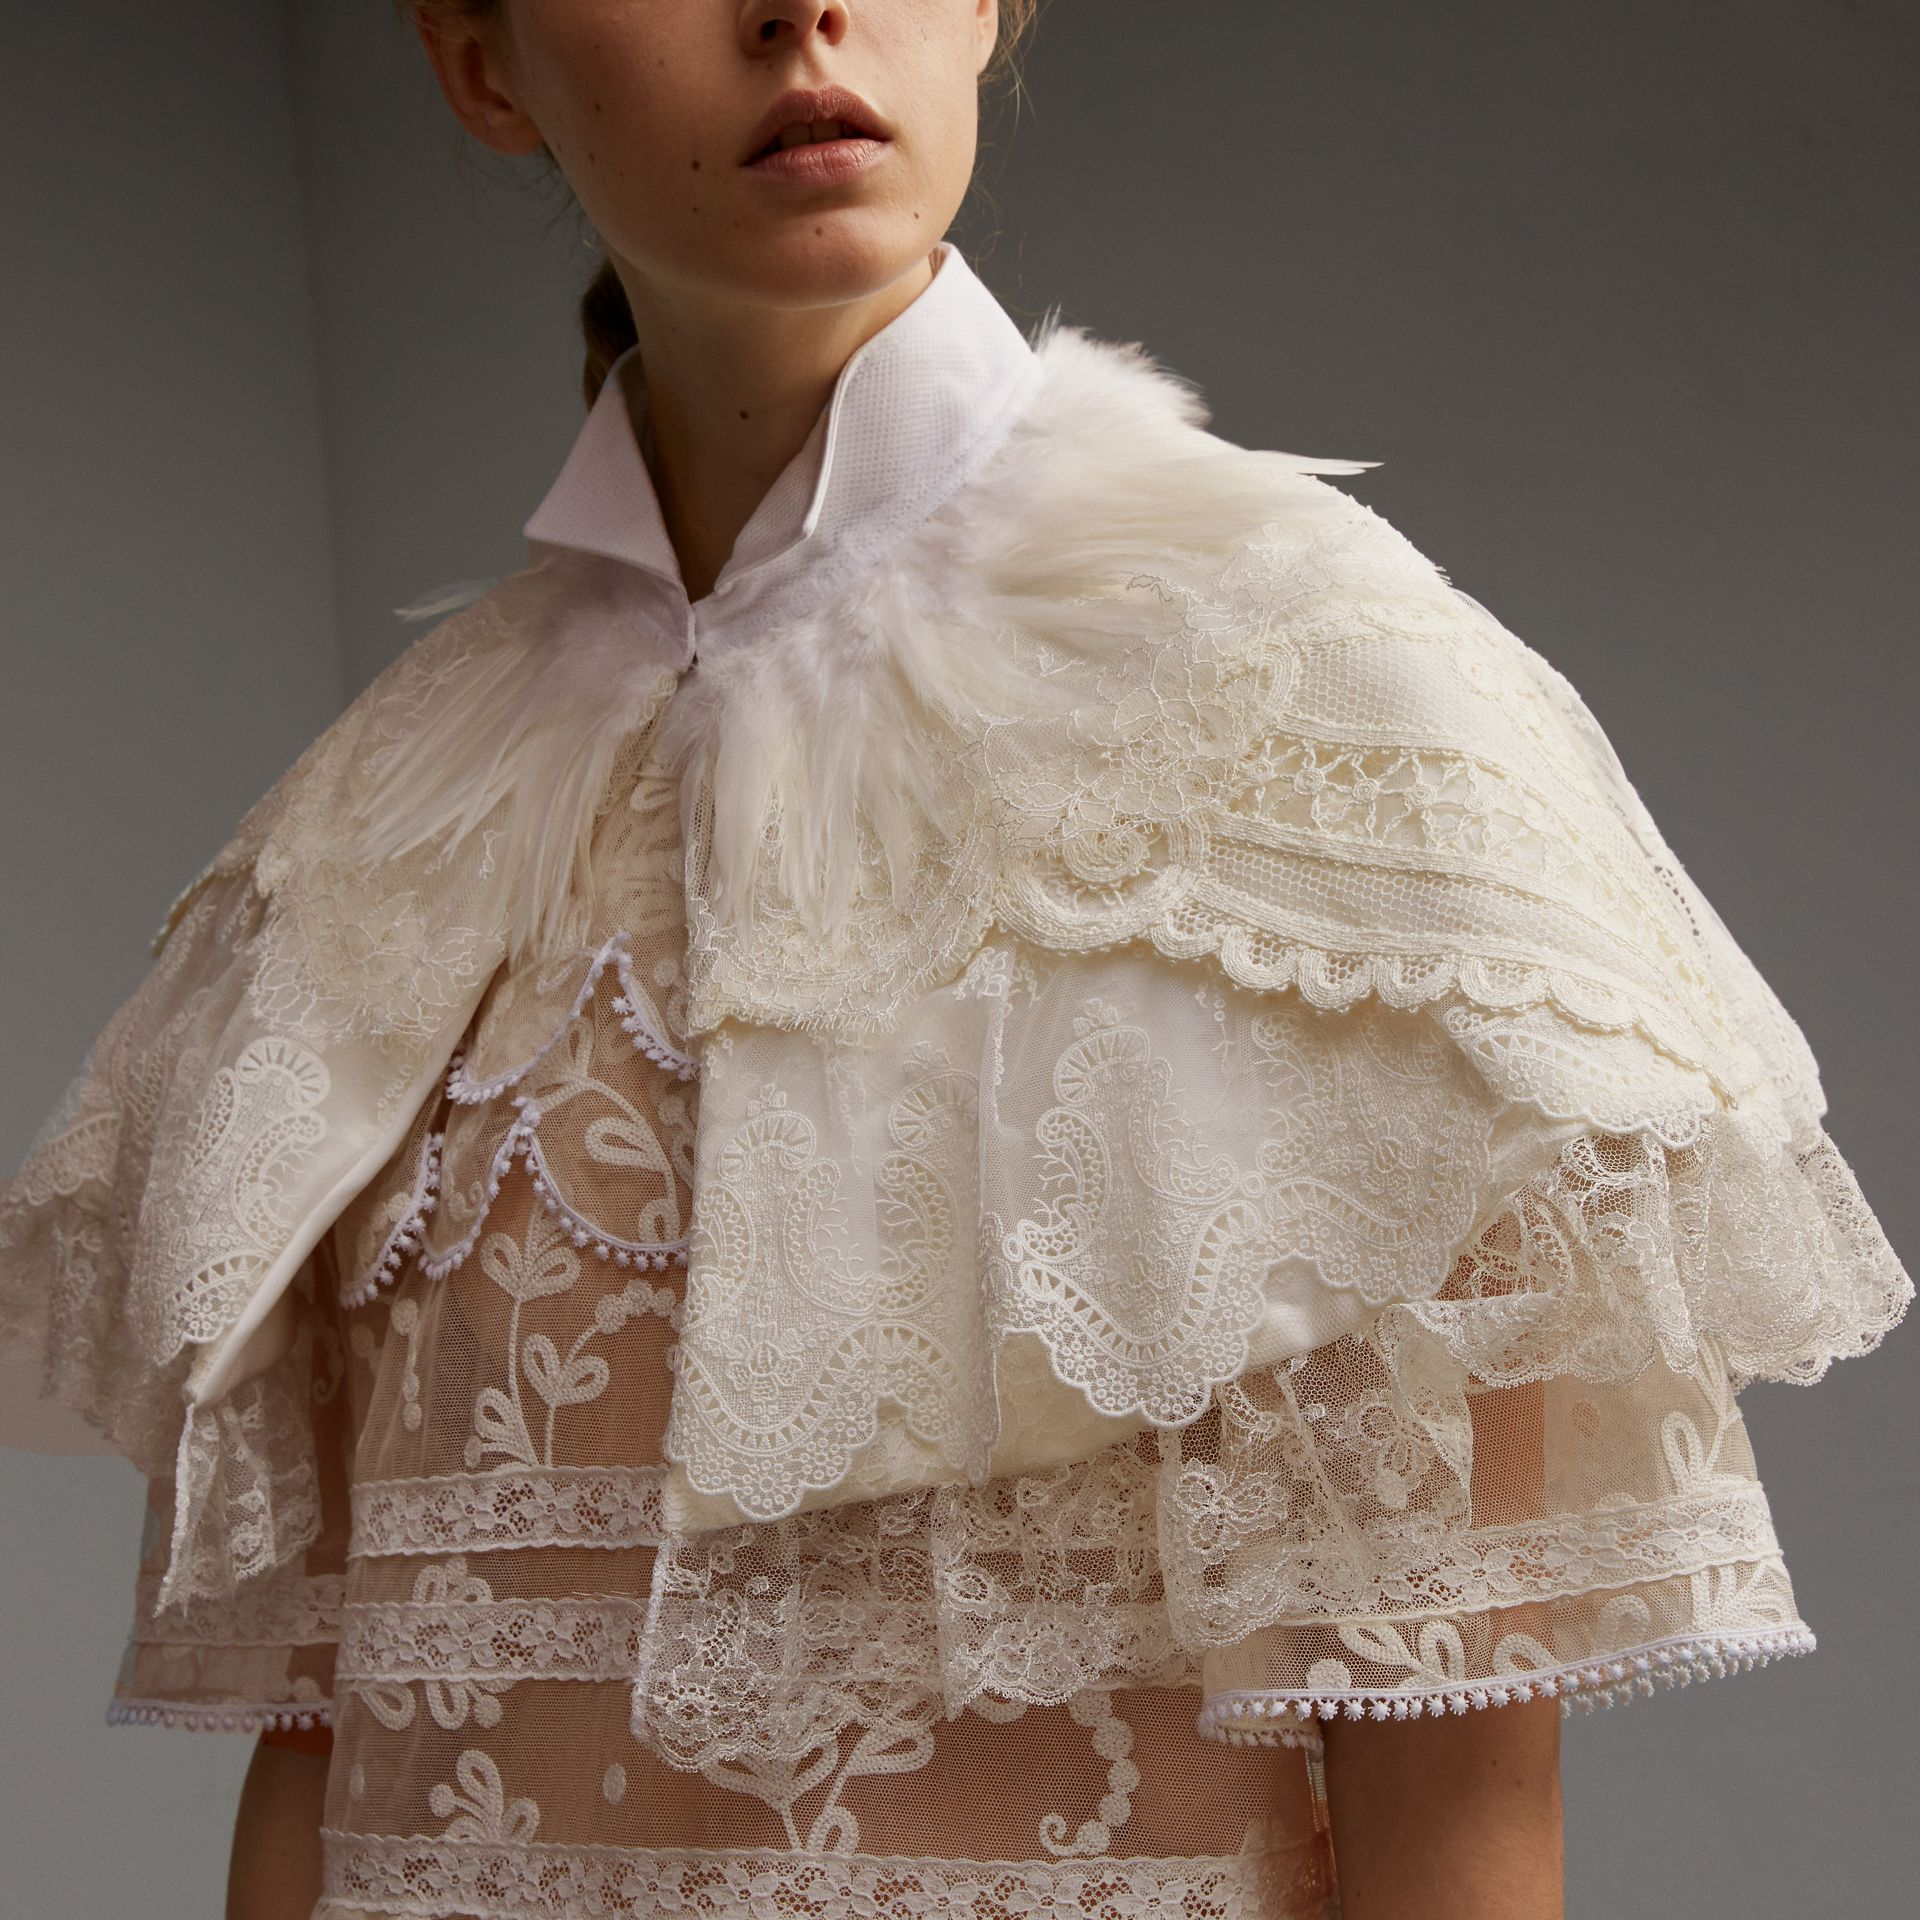 Feather Collar Detail Layered Lace Capelet in White - Women | Burberry Singapore - gallery image 5